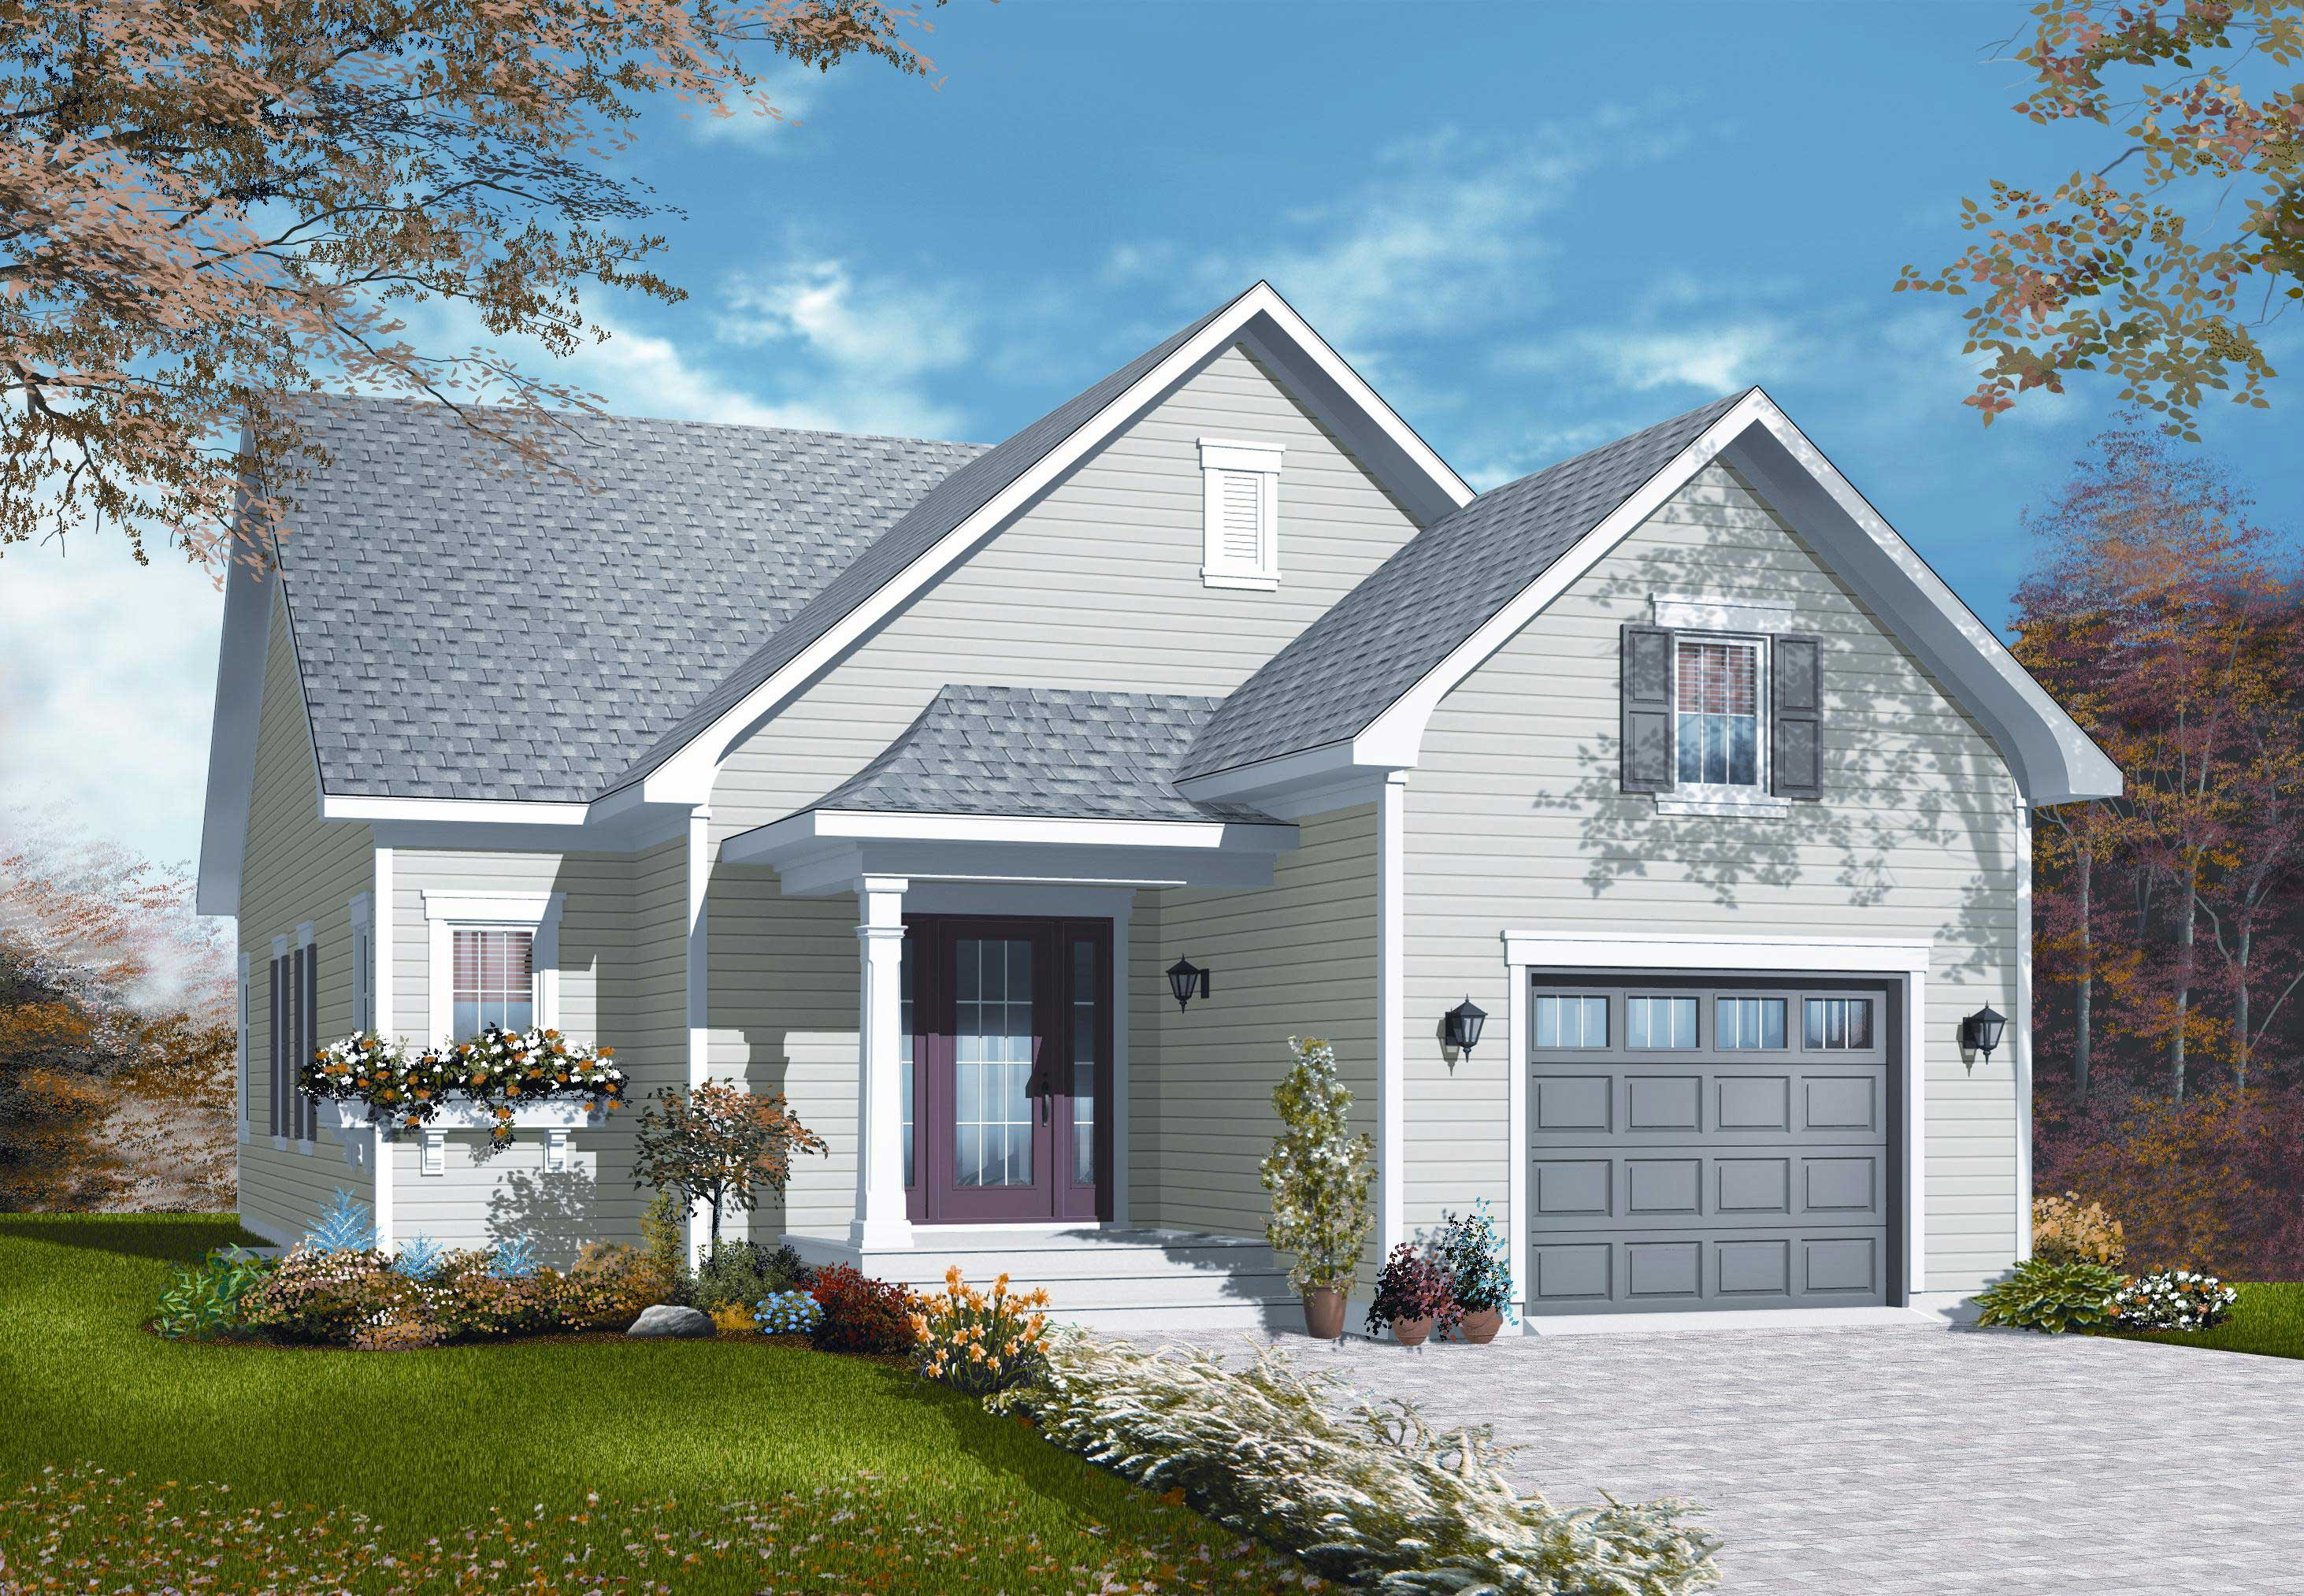 Small country house plans home design 3263 for Home pland